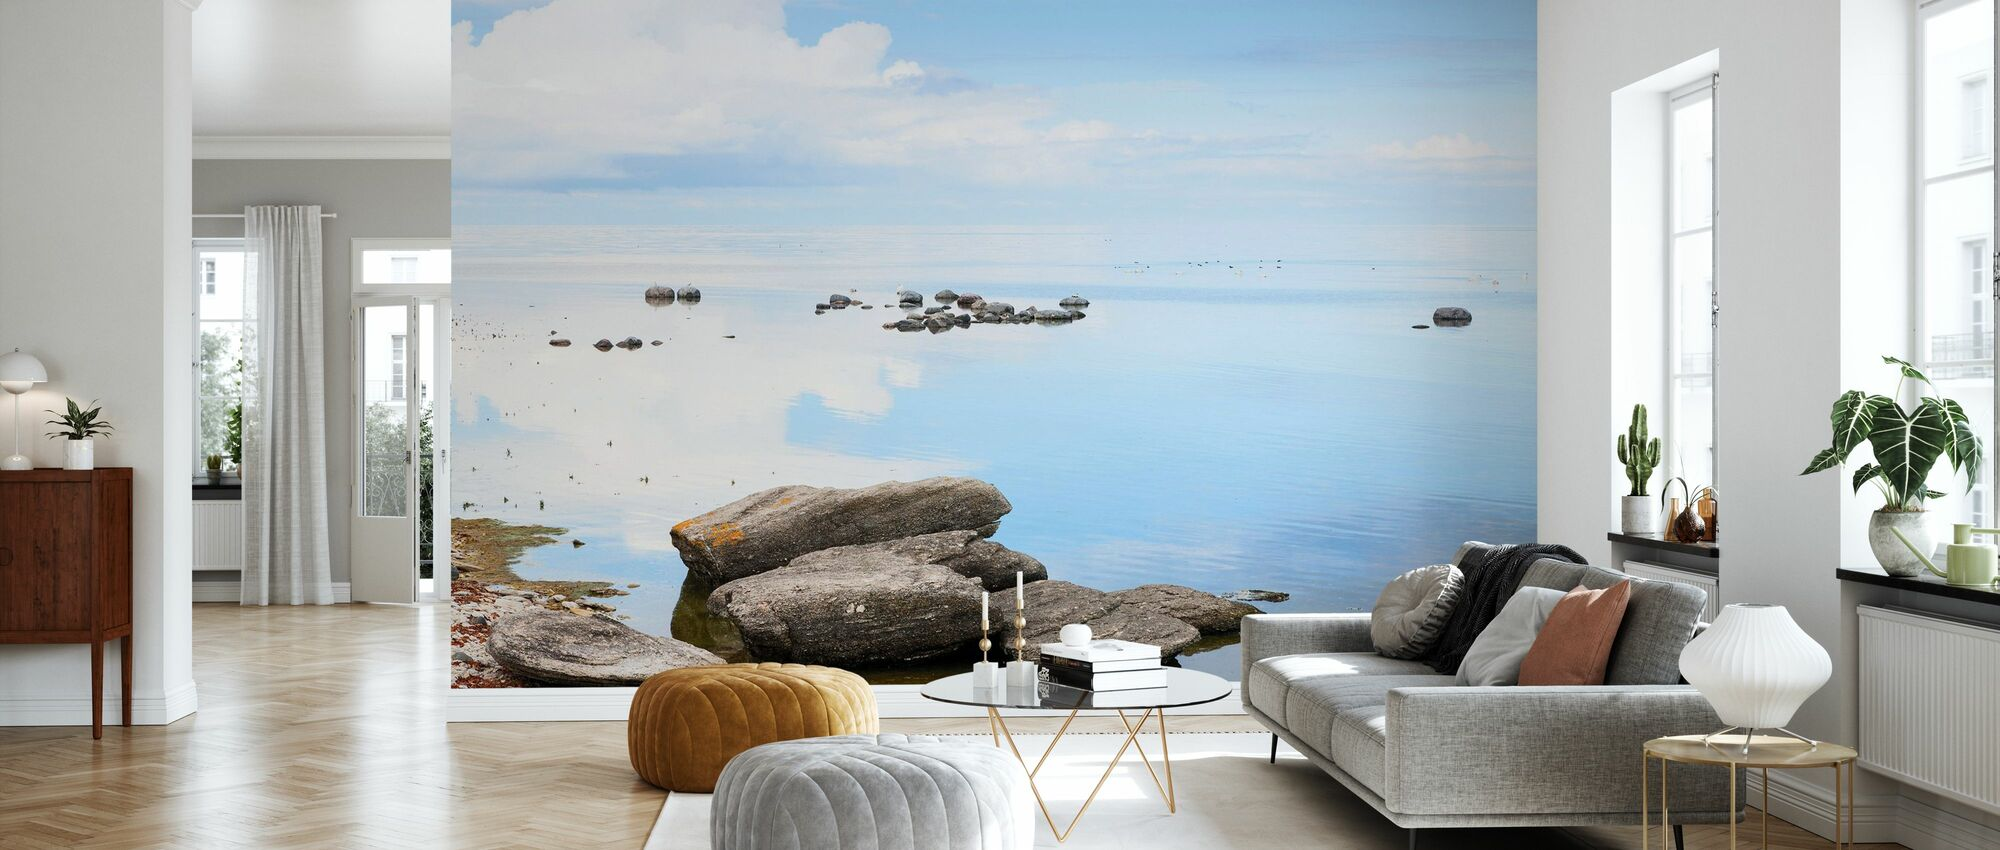 Sunny day at the coast of Gotland - Wallpaper - Living Room